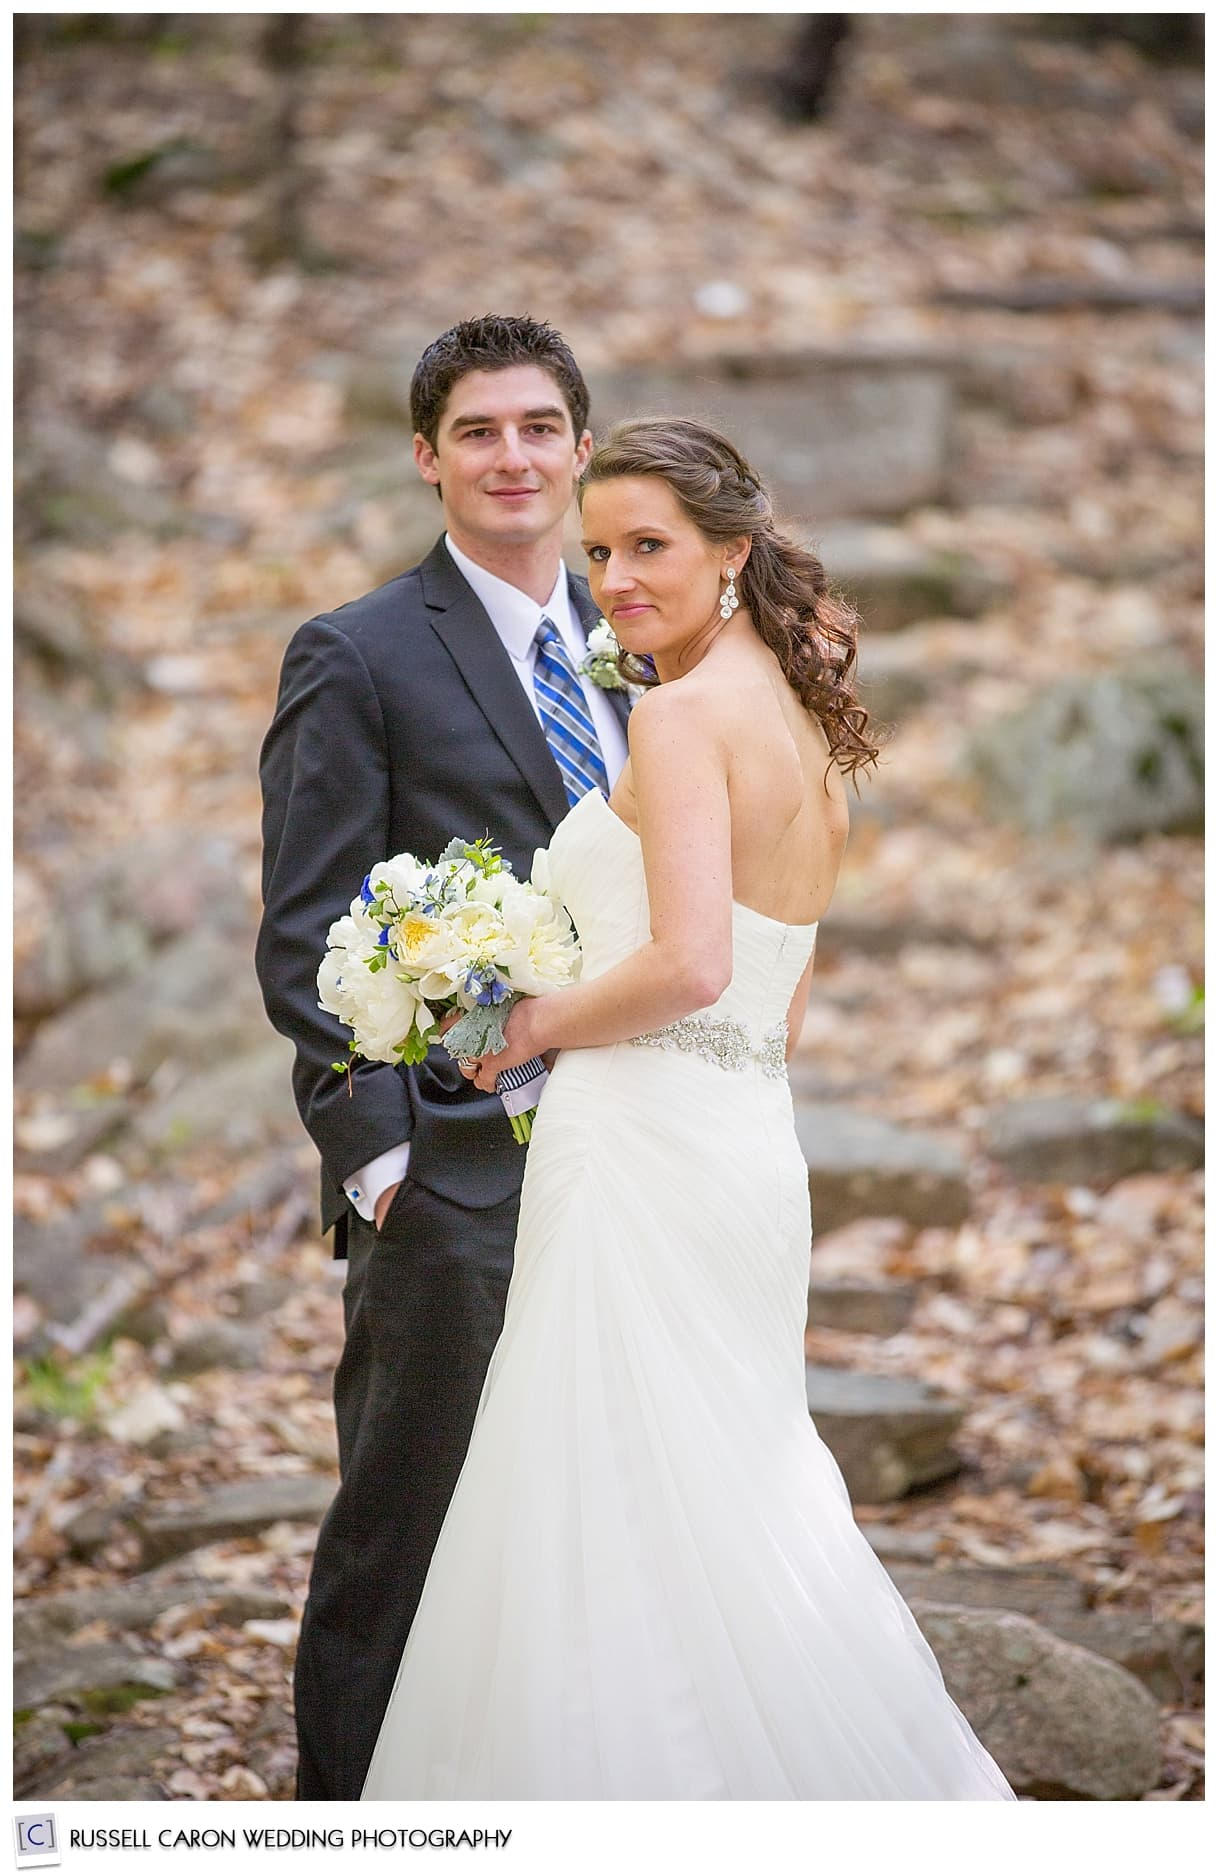 Laura and Chad, photo ideas for bride and groom